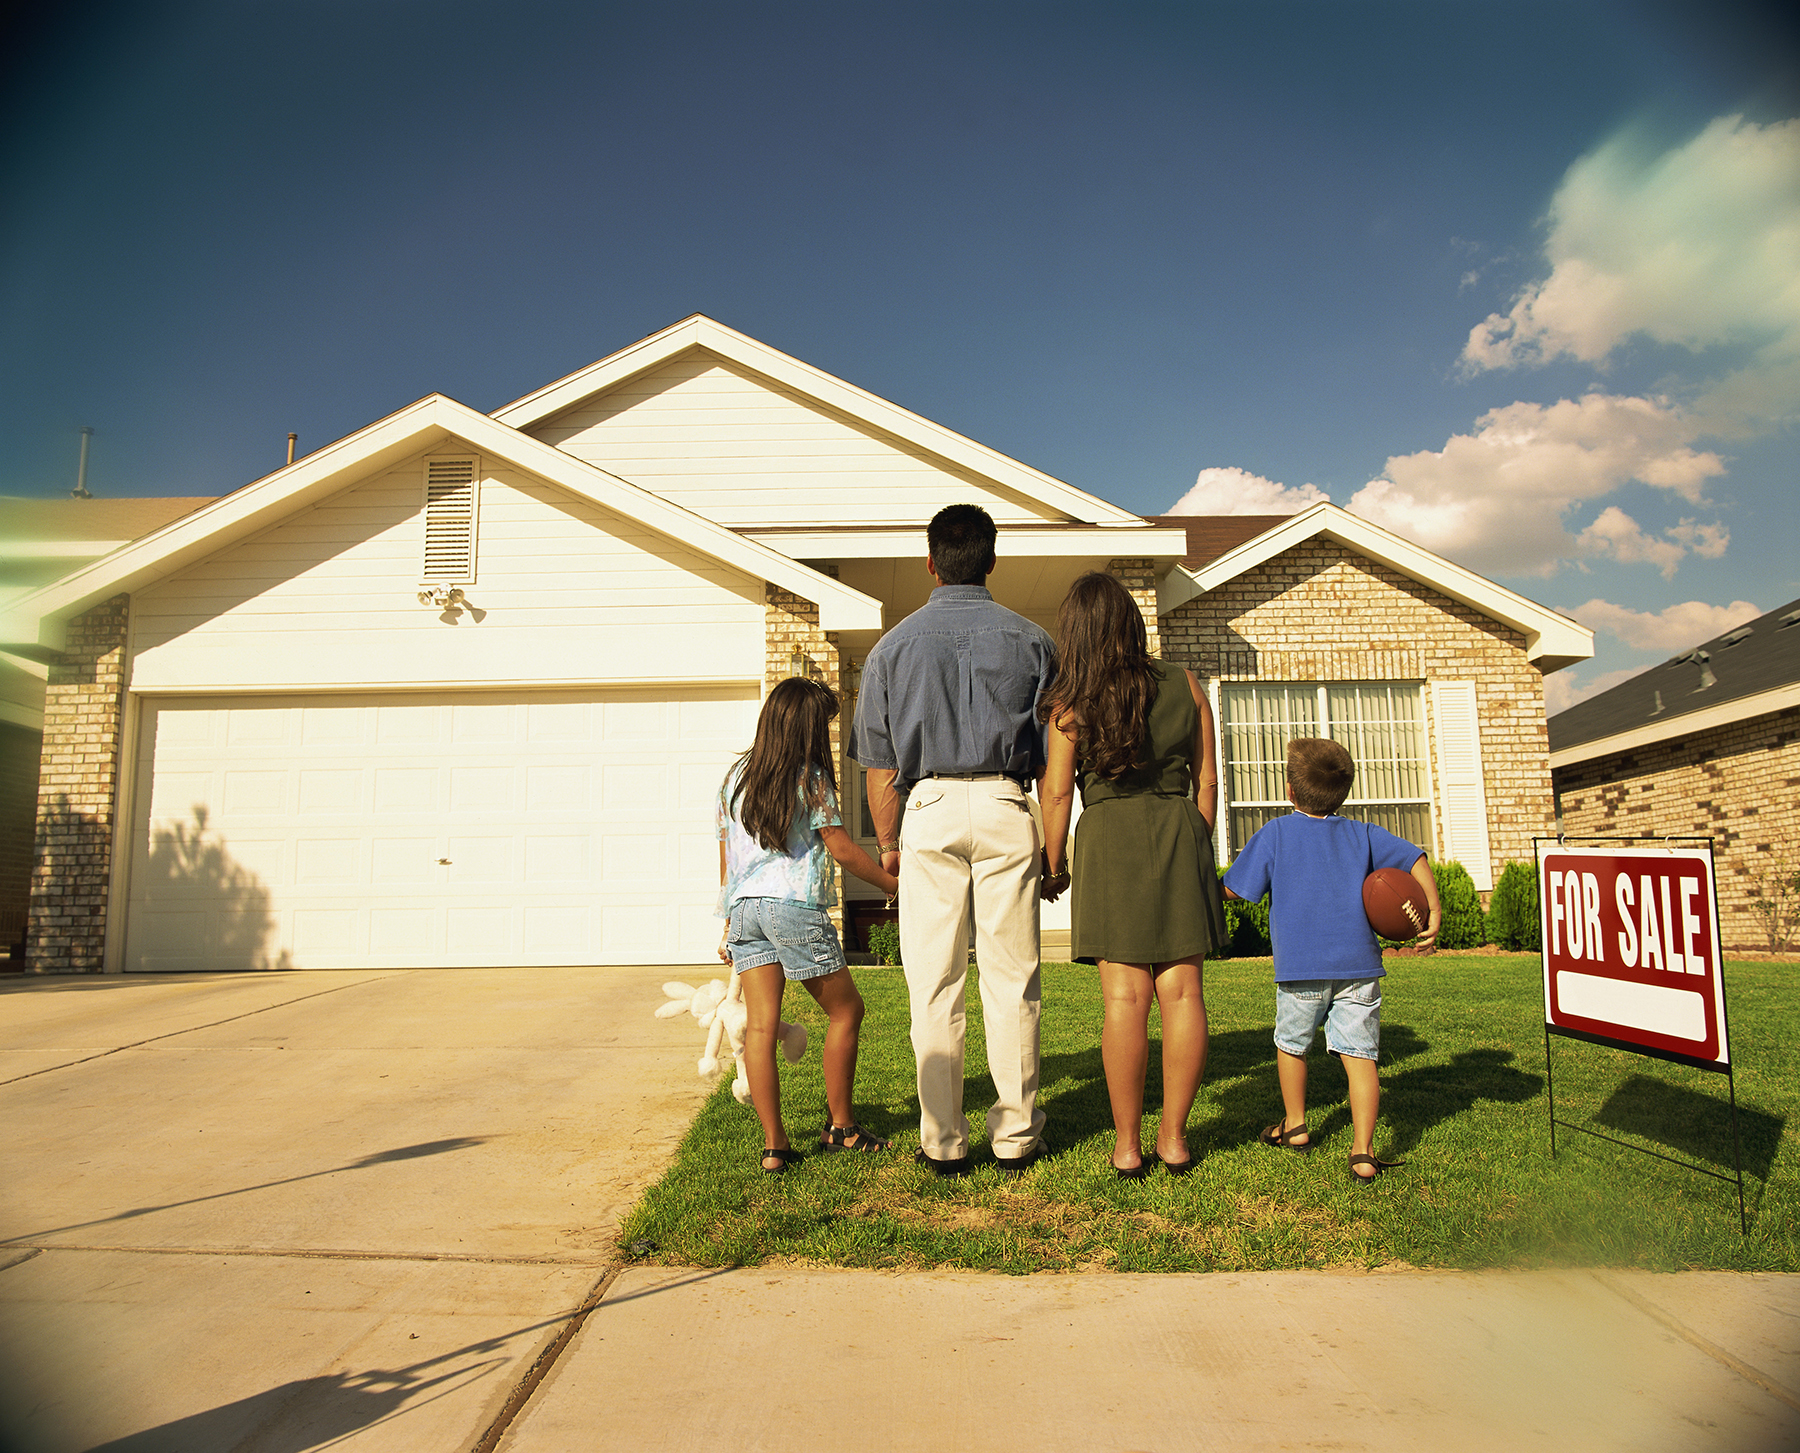 Finding A Buyer For The Property